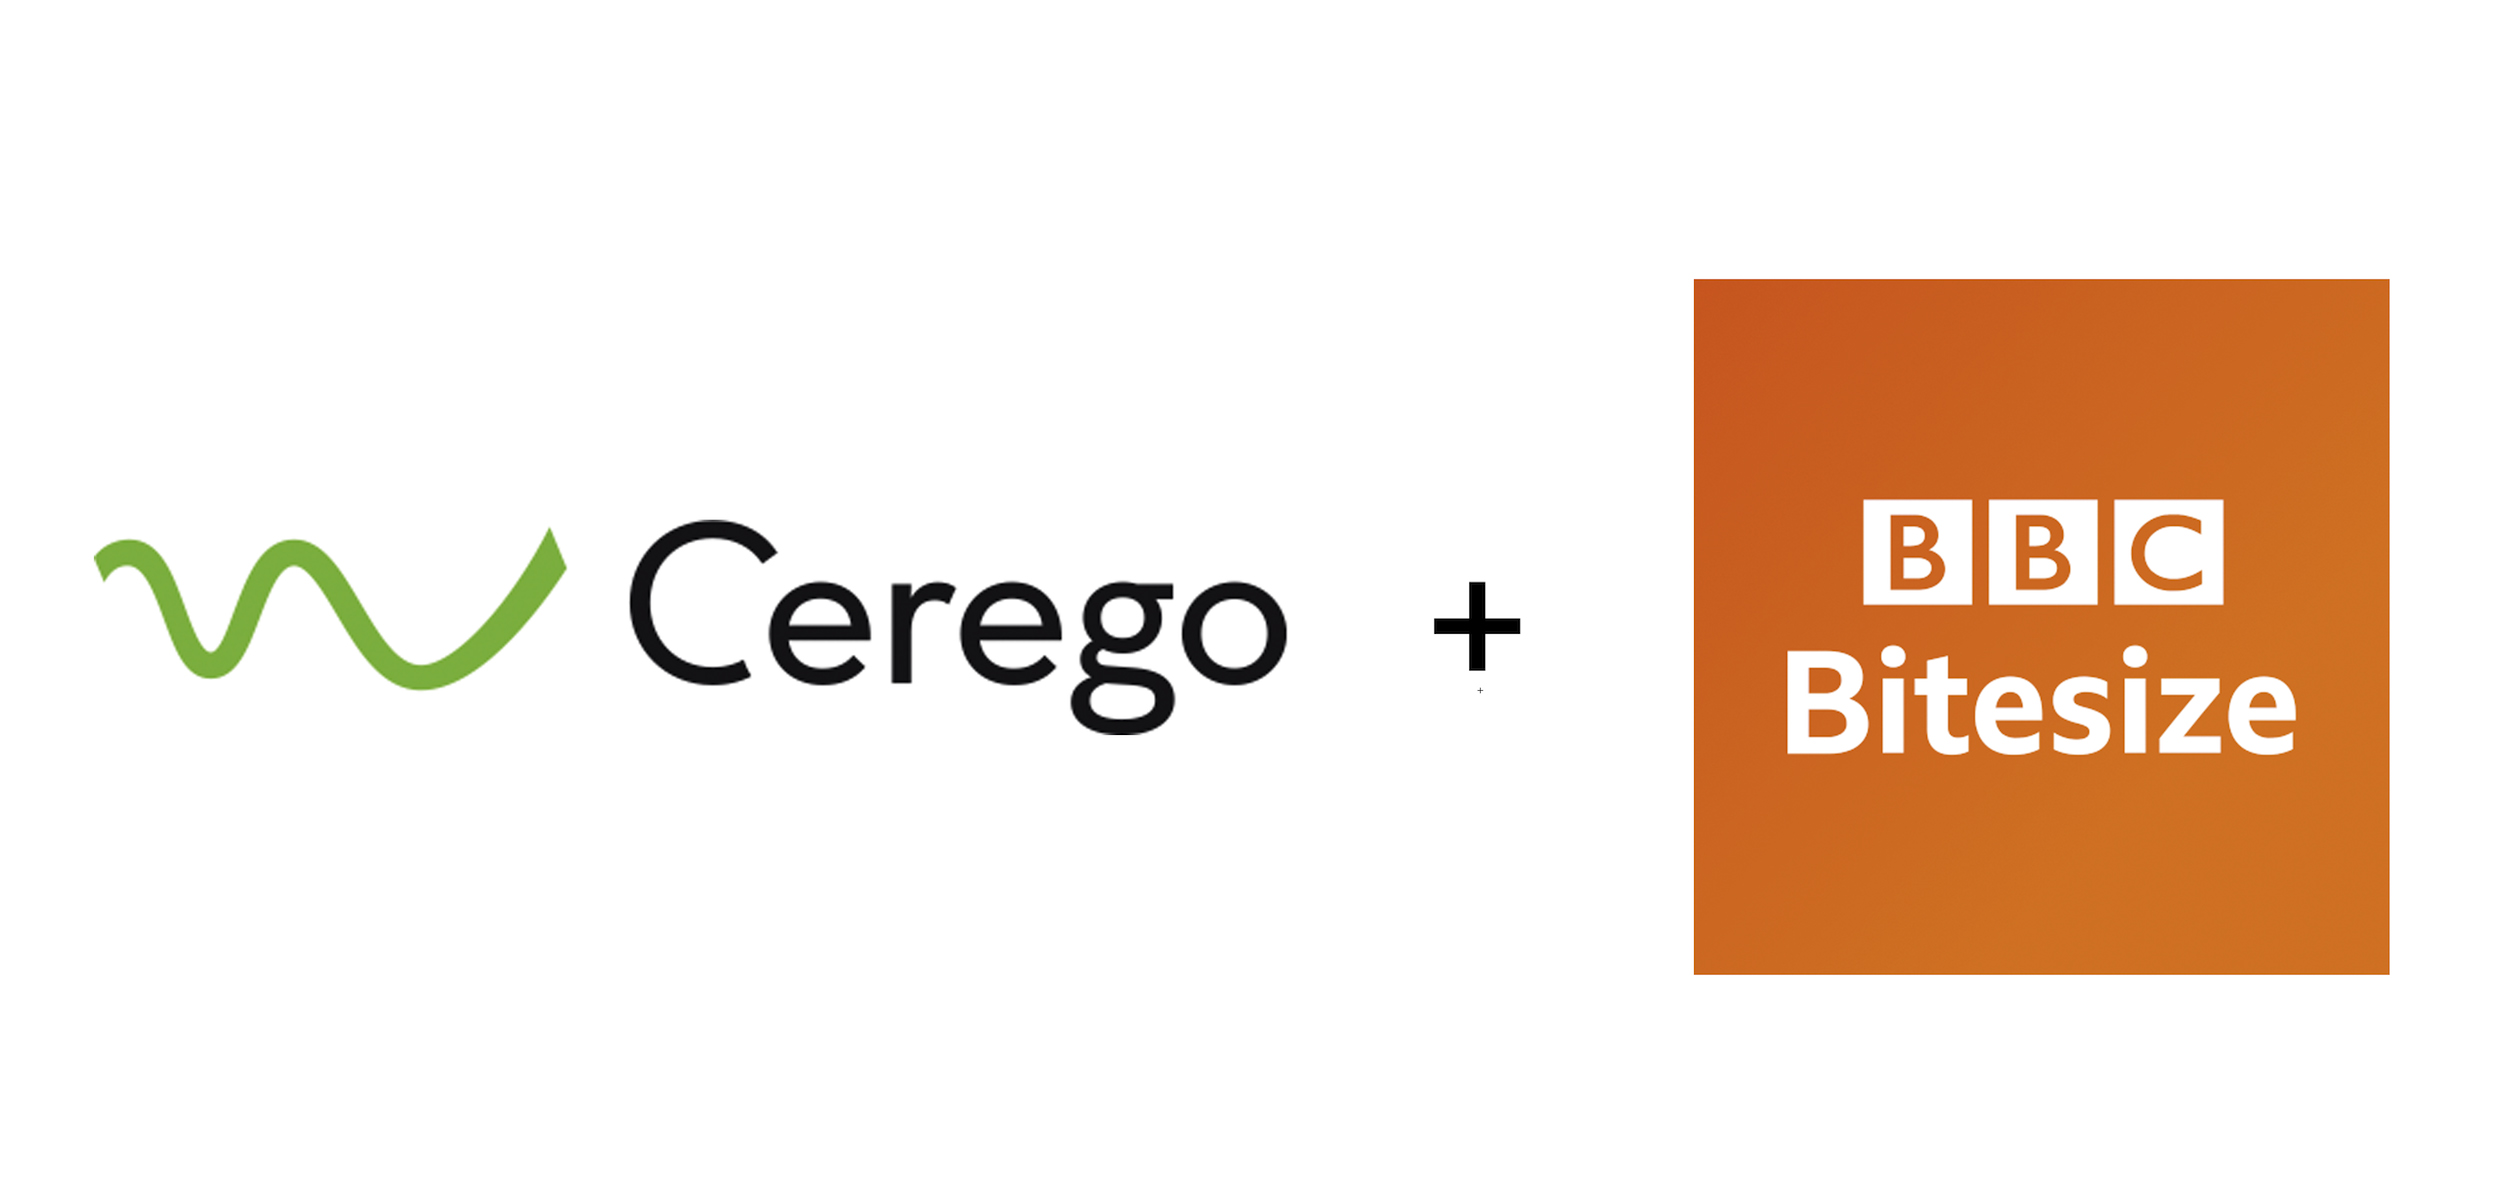 BBC Bitesize Taps Cerego to Help Deliver Personalized Learning Programs for 4 Million UK Students